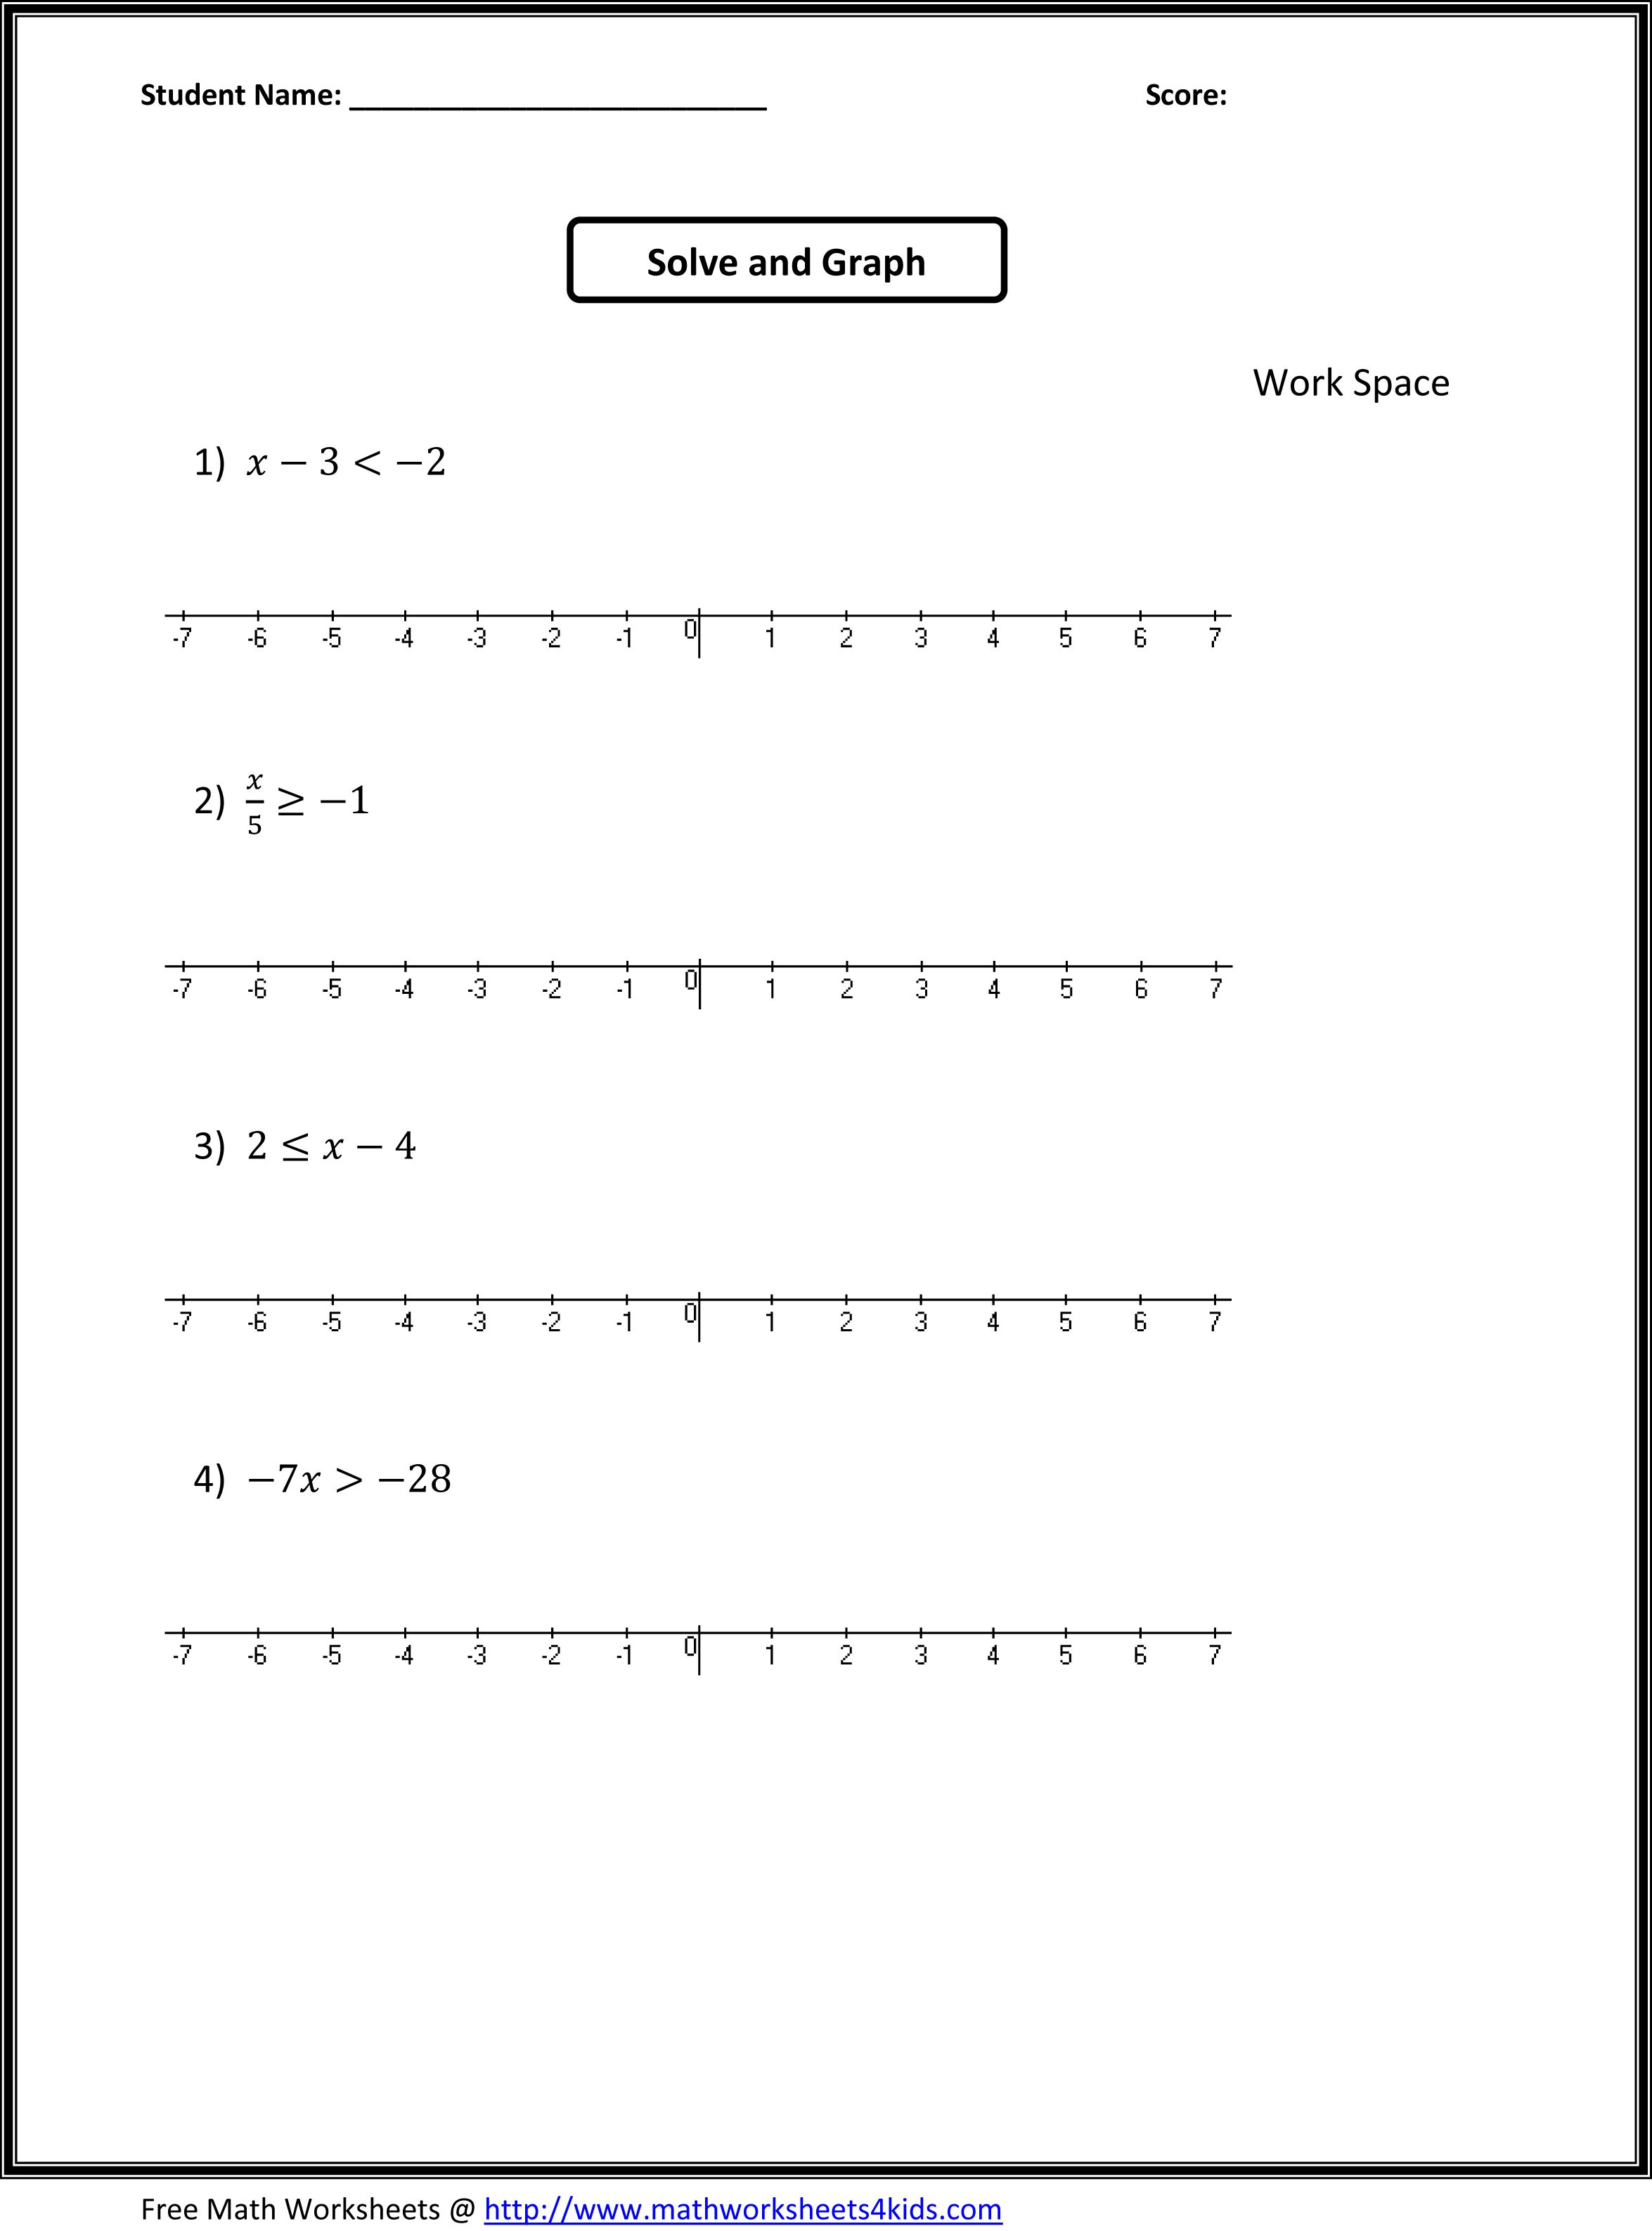 Printables Graphing Inequalities Worksheet solving two step inequalities worksheet fireyourmentor free worksheets 1000 images about on pinterest word problems 7th grade